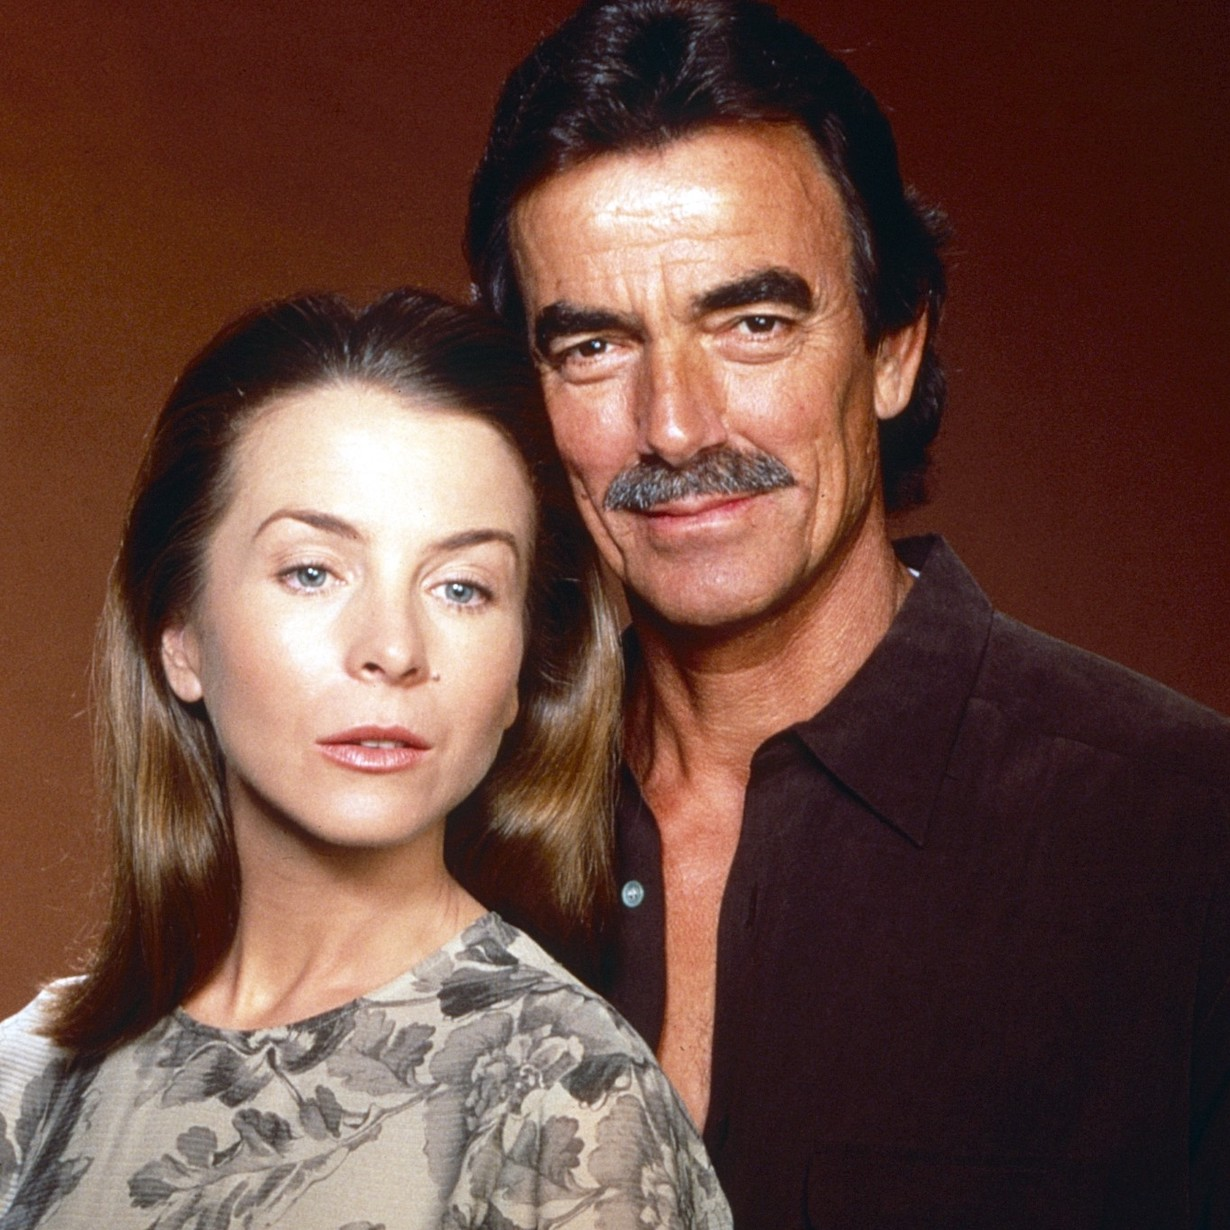 THE YOUNG AND THE RESTLESS, from left: Signy Coleman, Eric Braeden YR hope victor